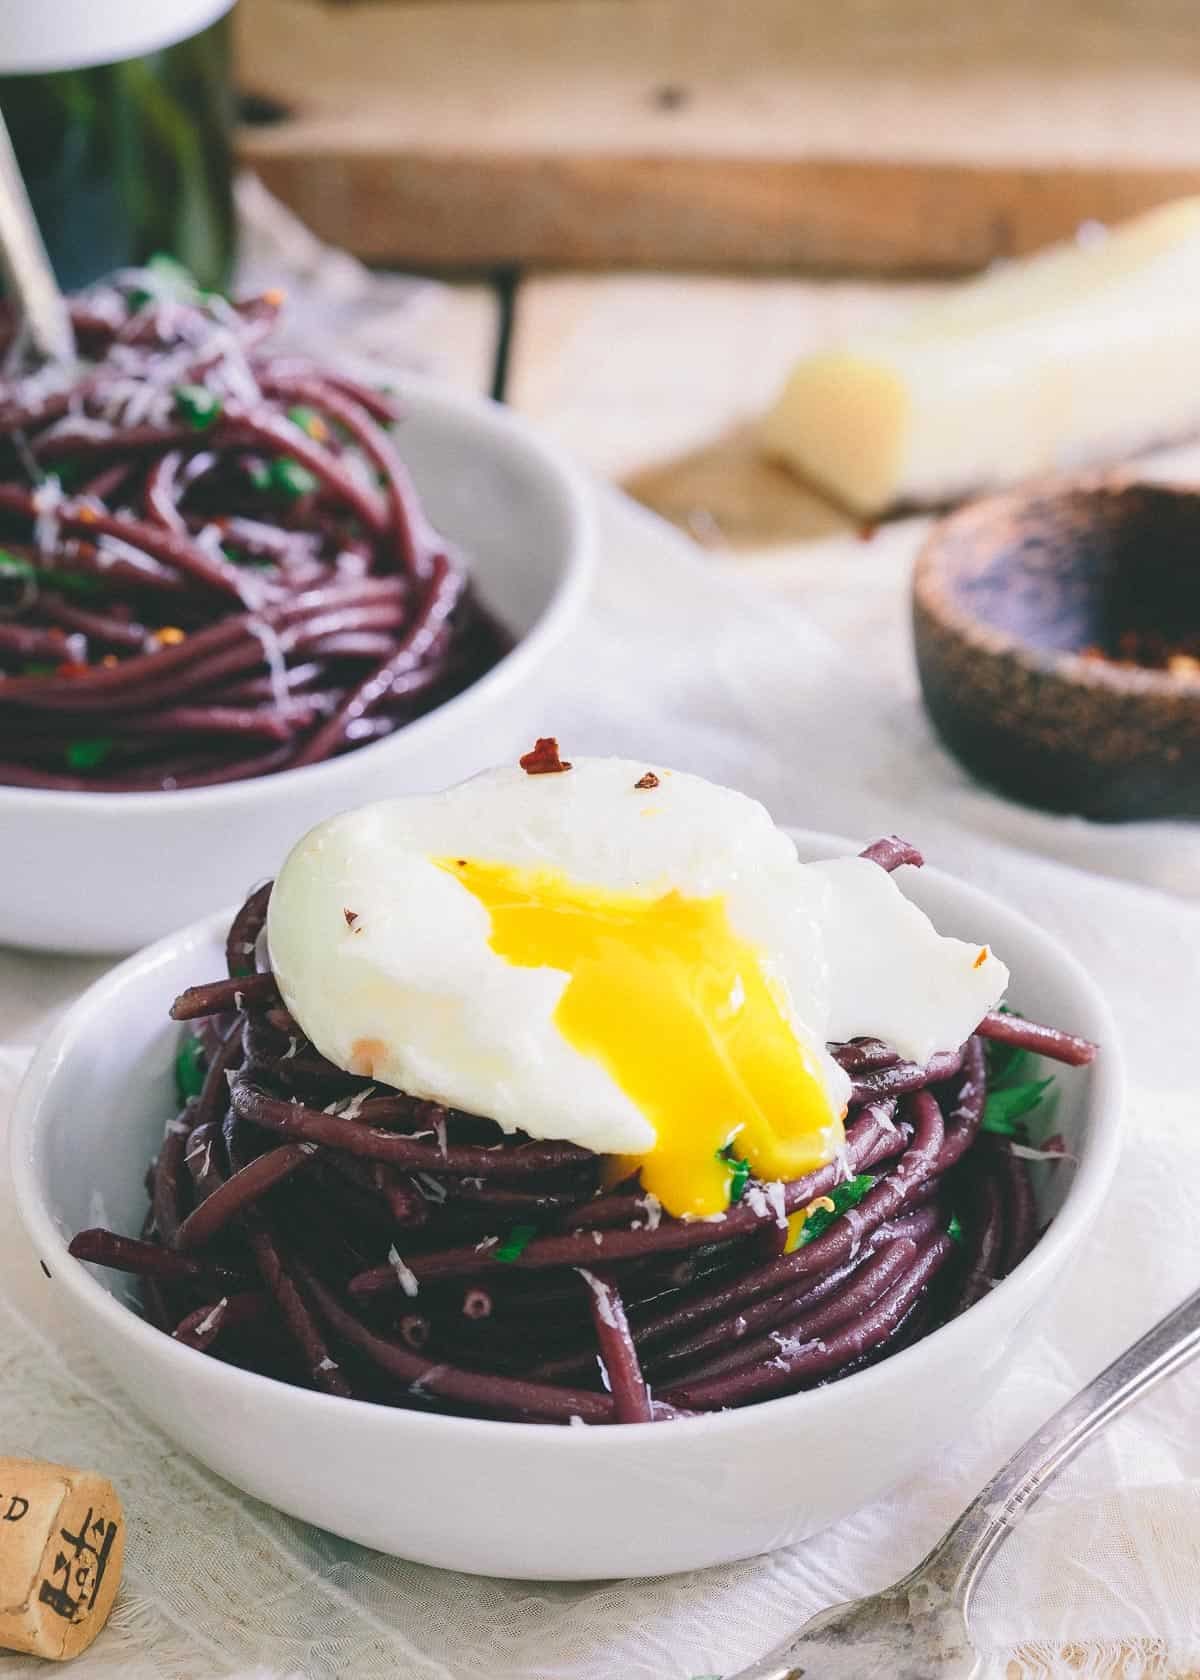 Top this red wine garlic bucatini with a soft boiled egg for a simple yet elegant dinner.